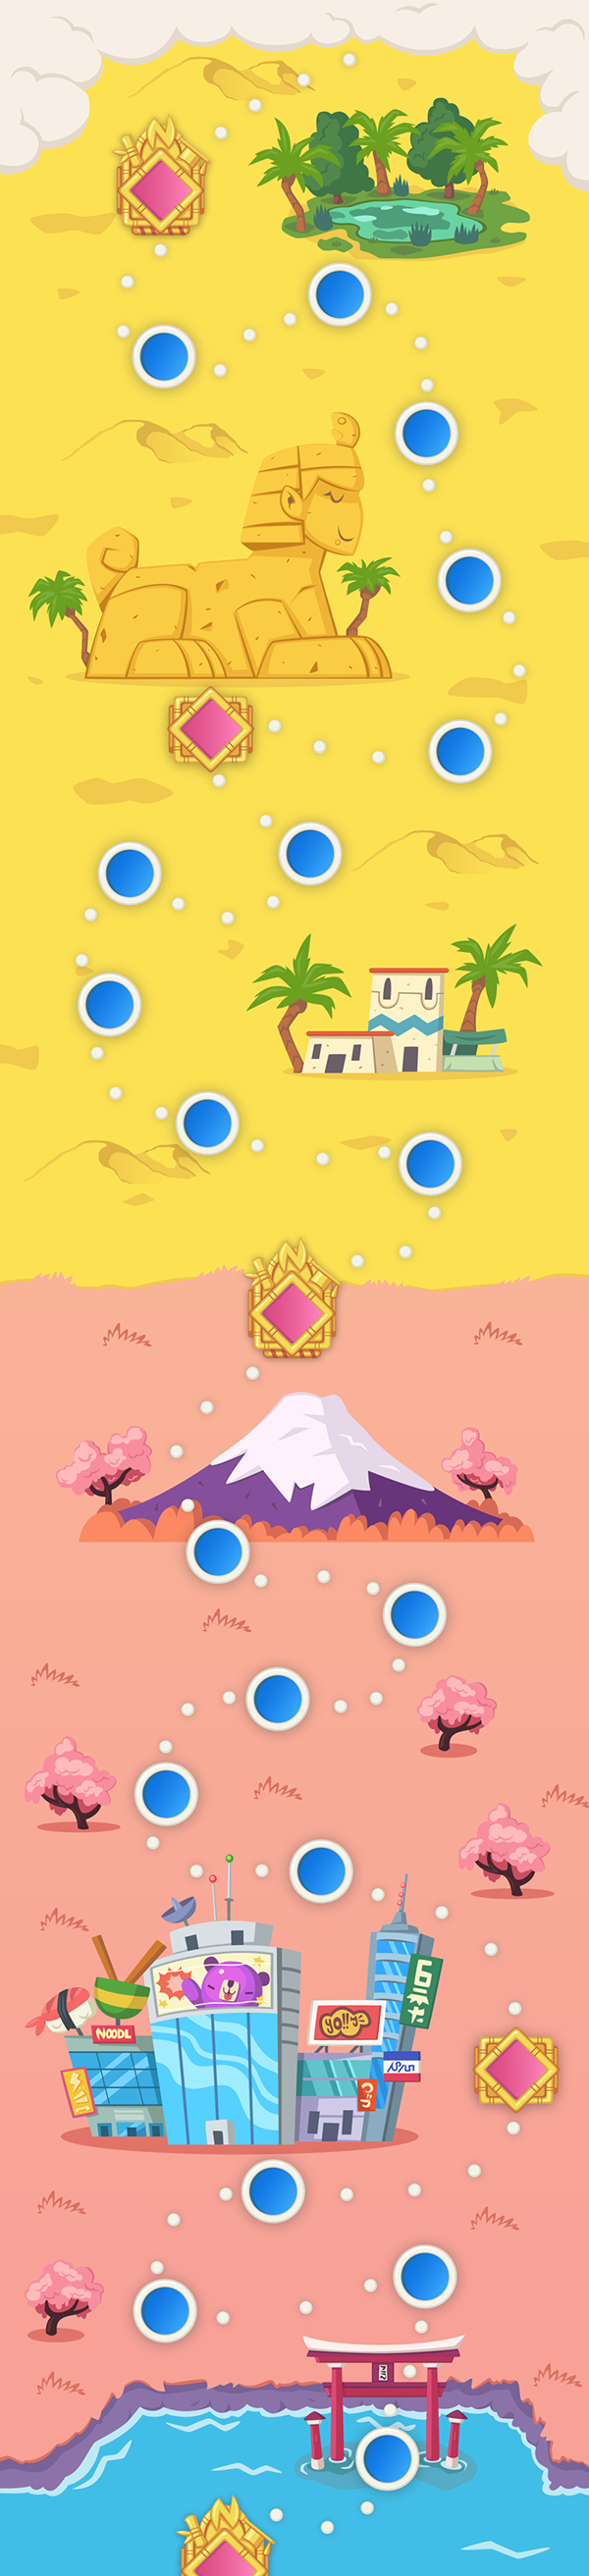 Drwton mobile game world map on behance gumiabroncs Images